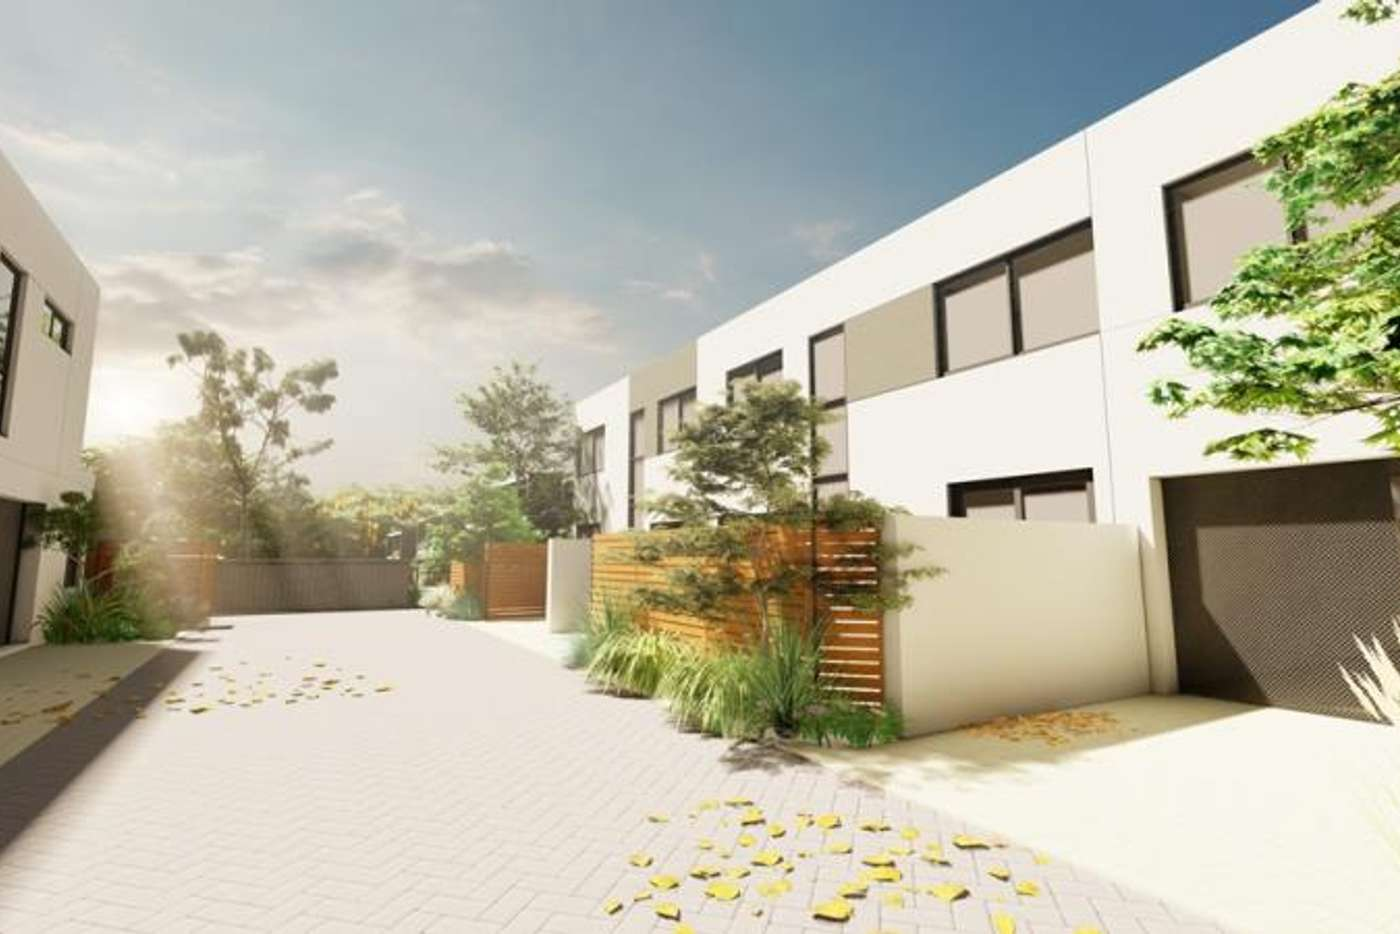 Main view of Homely townhouse listing, 5/24 Sheridan Lane, West Perth WA 6005